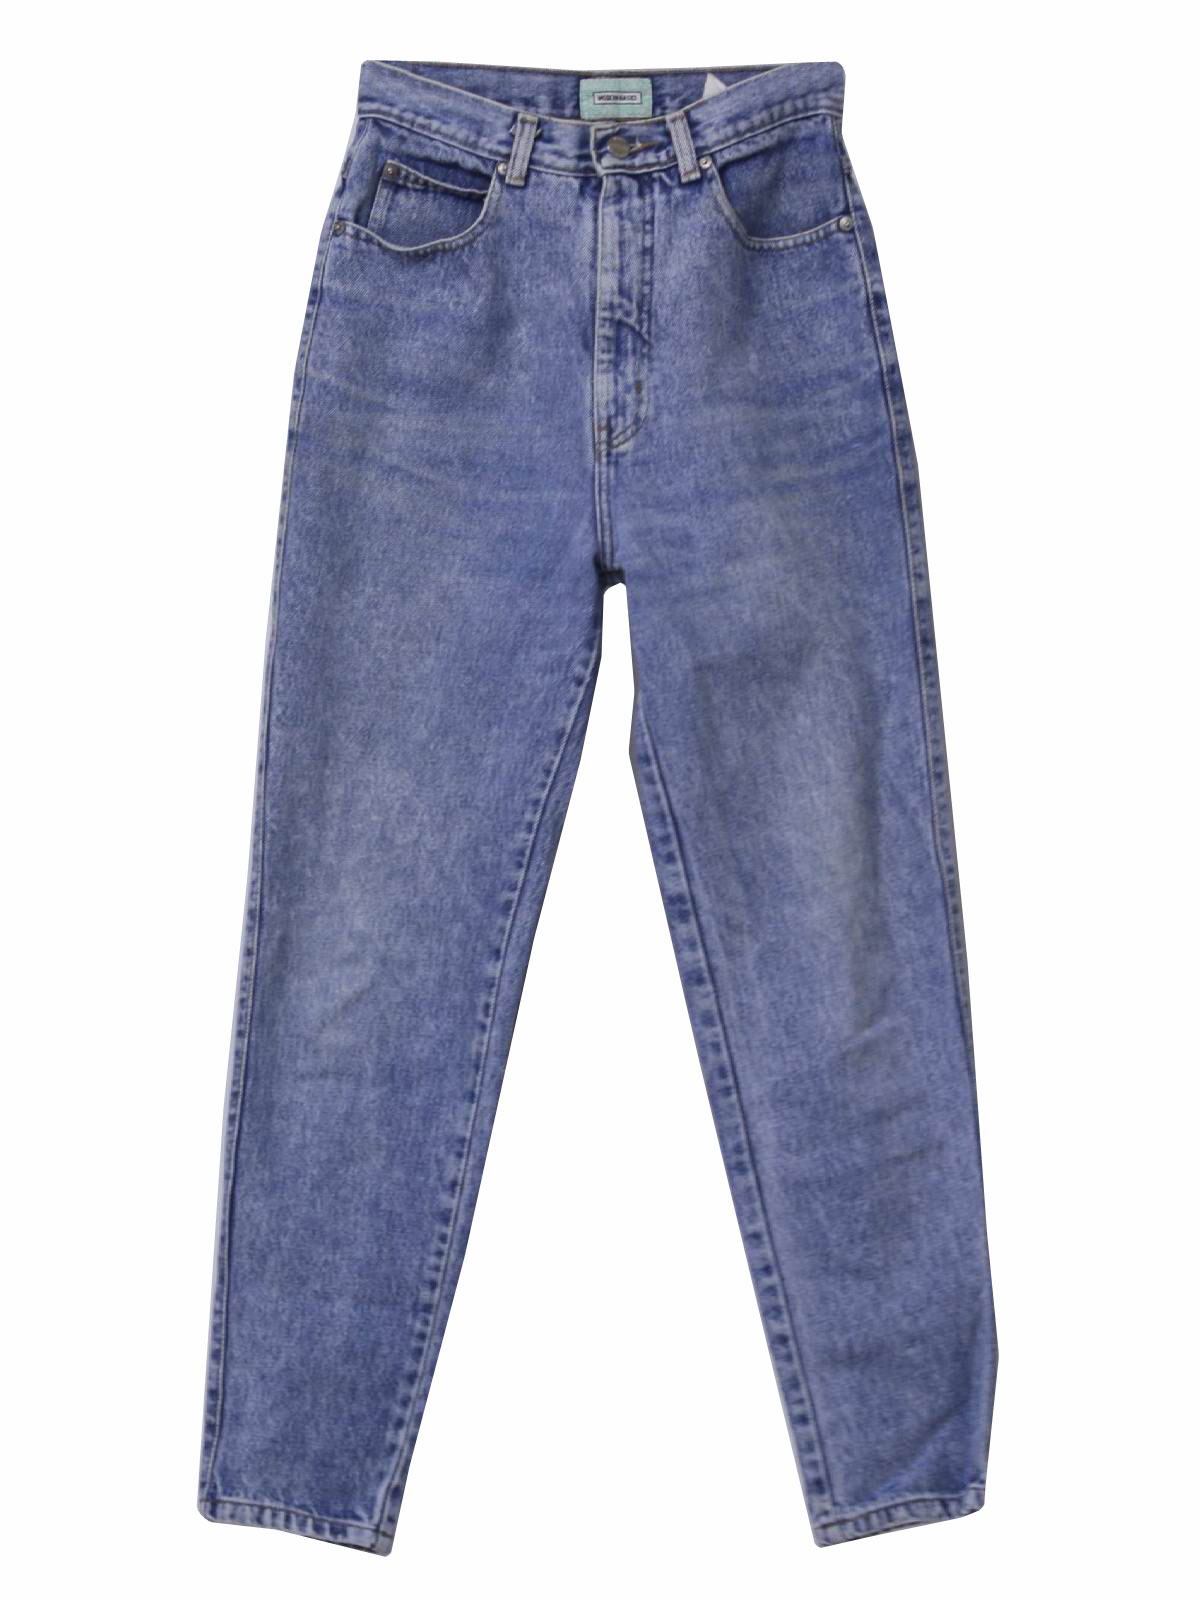 wicked 90s acid washed jeans pants early 90s sassoon womens light blue ...